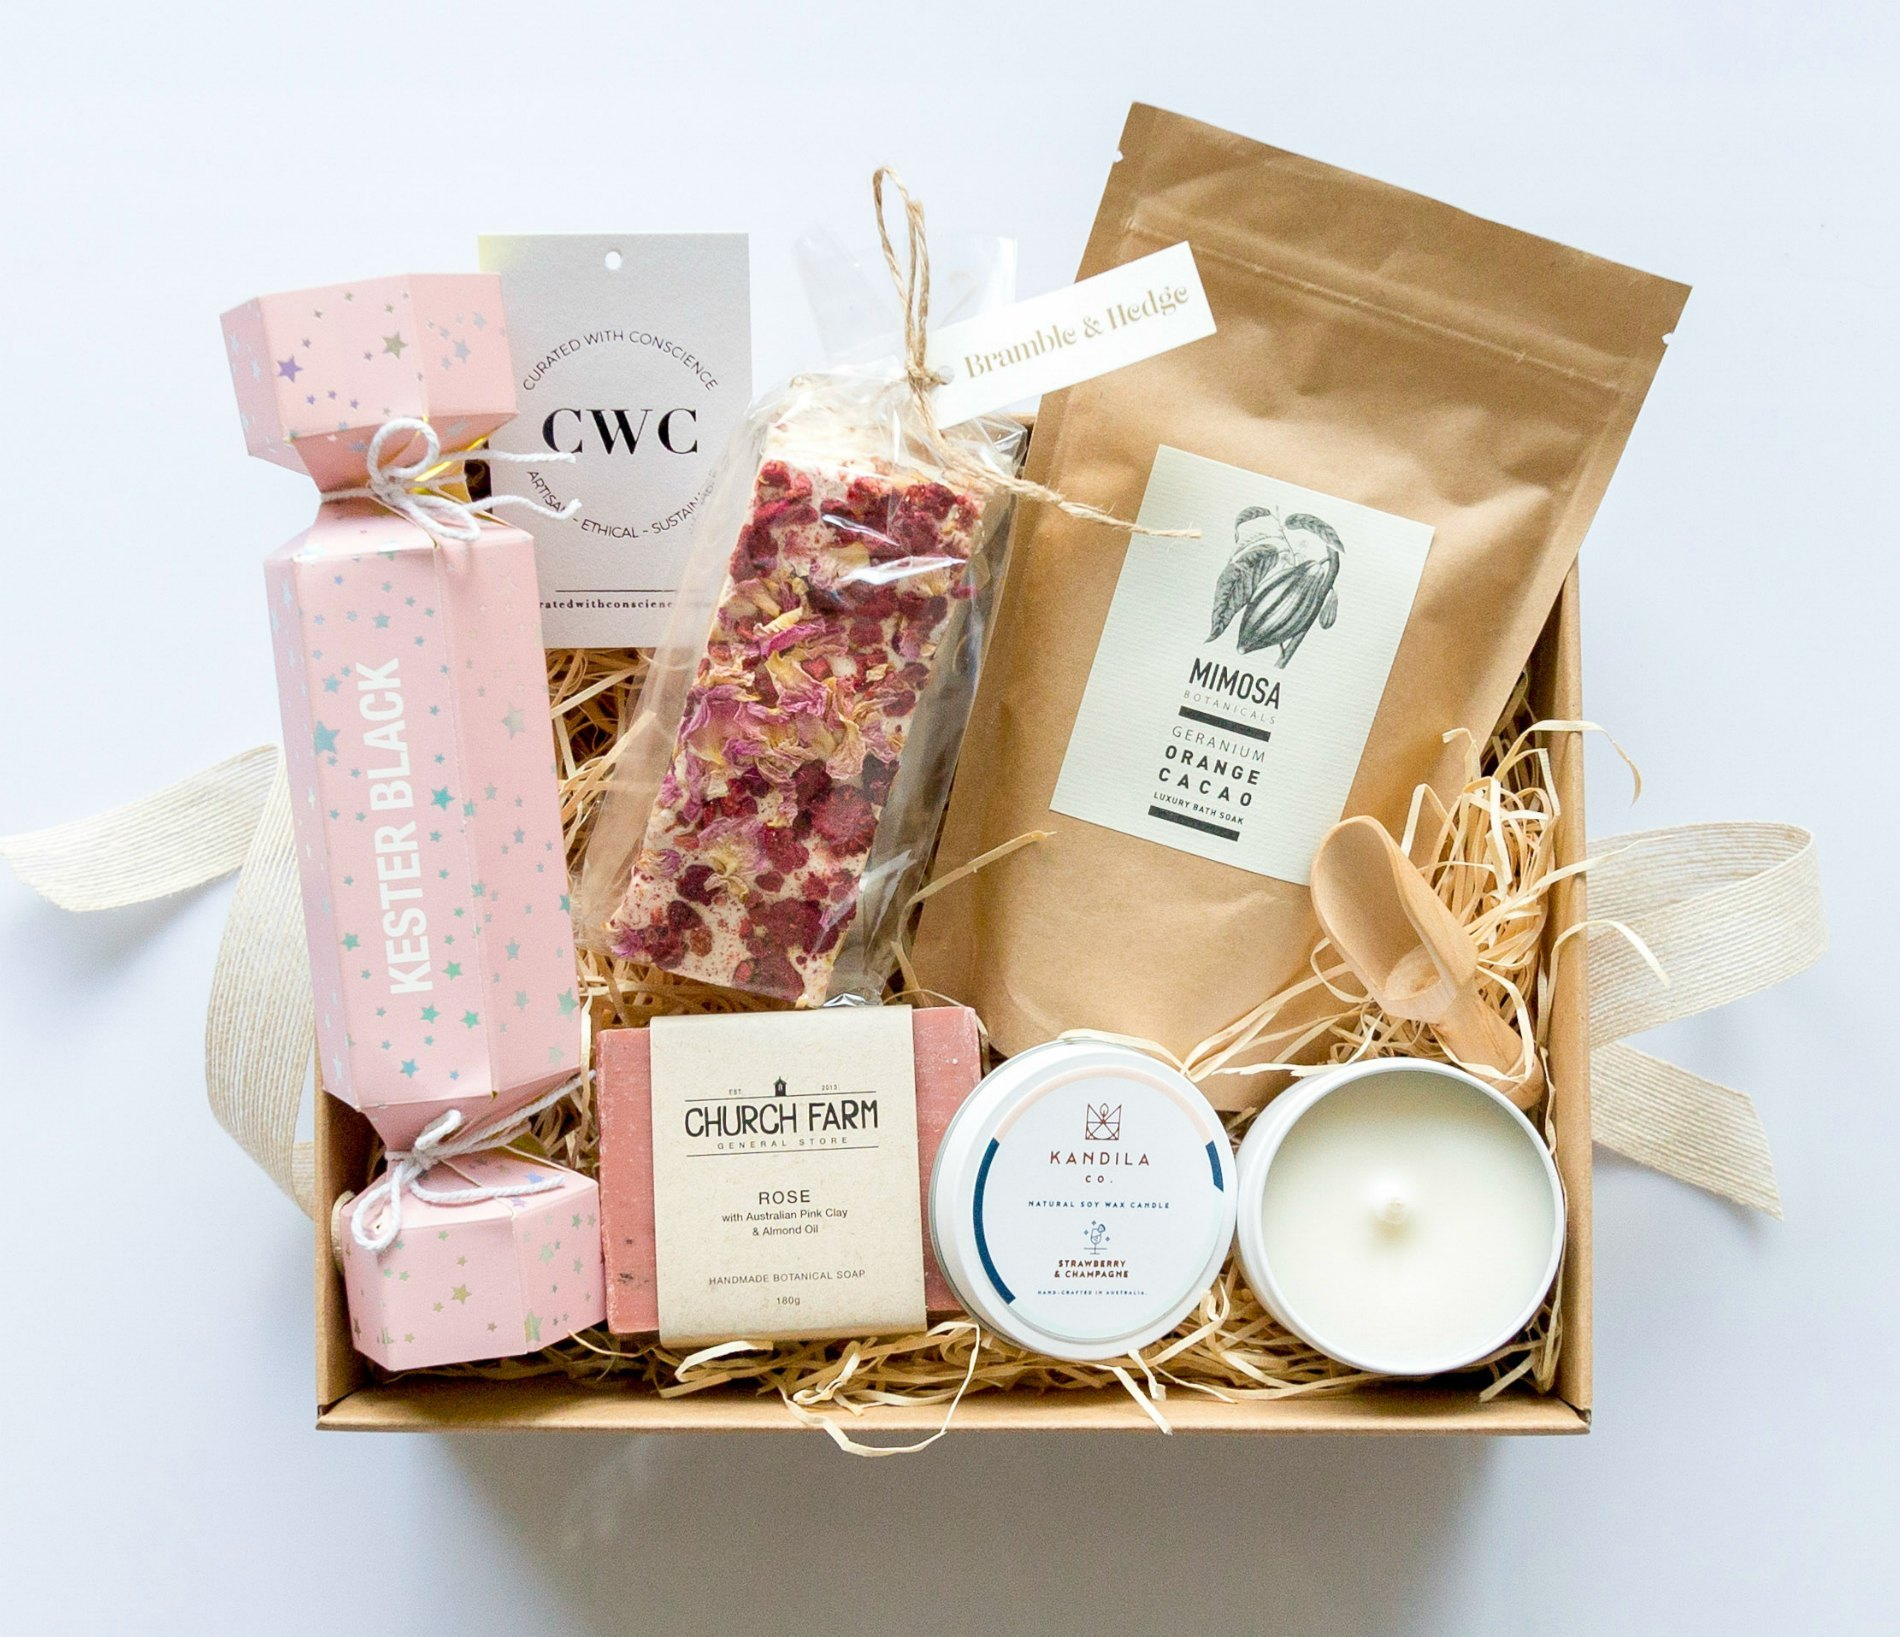 Day Spa at Home Curated With Conscience Ethical Gift Hampers